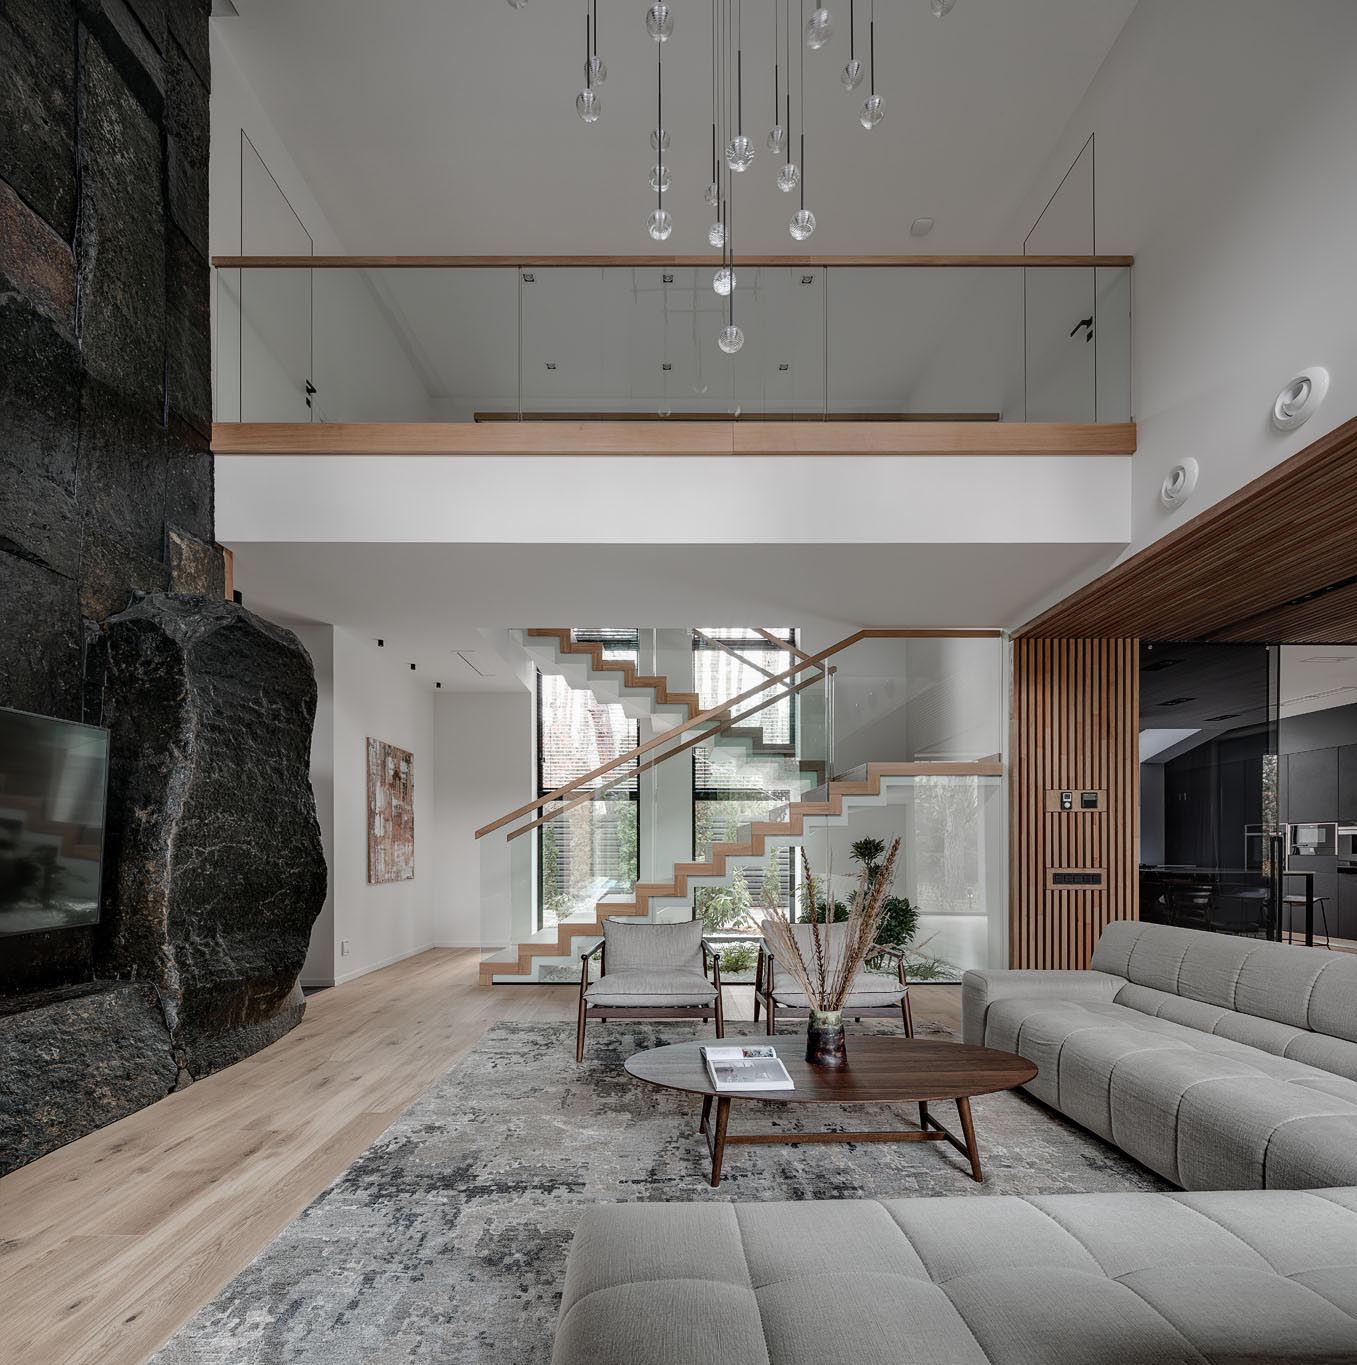 These modern stairs that connect the various levels of the home are made of concrete, wood, and glass. Underneath the stairs, live indoor plants and rocks have been used to create a small garden, bringing the outdoors in.